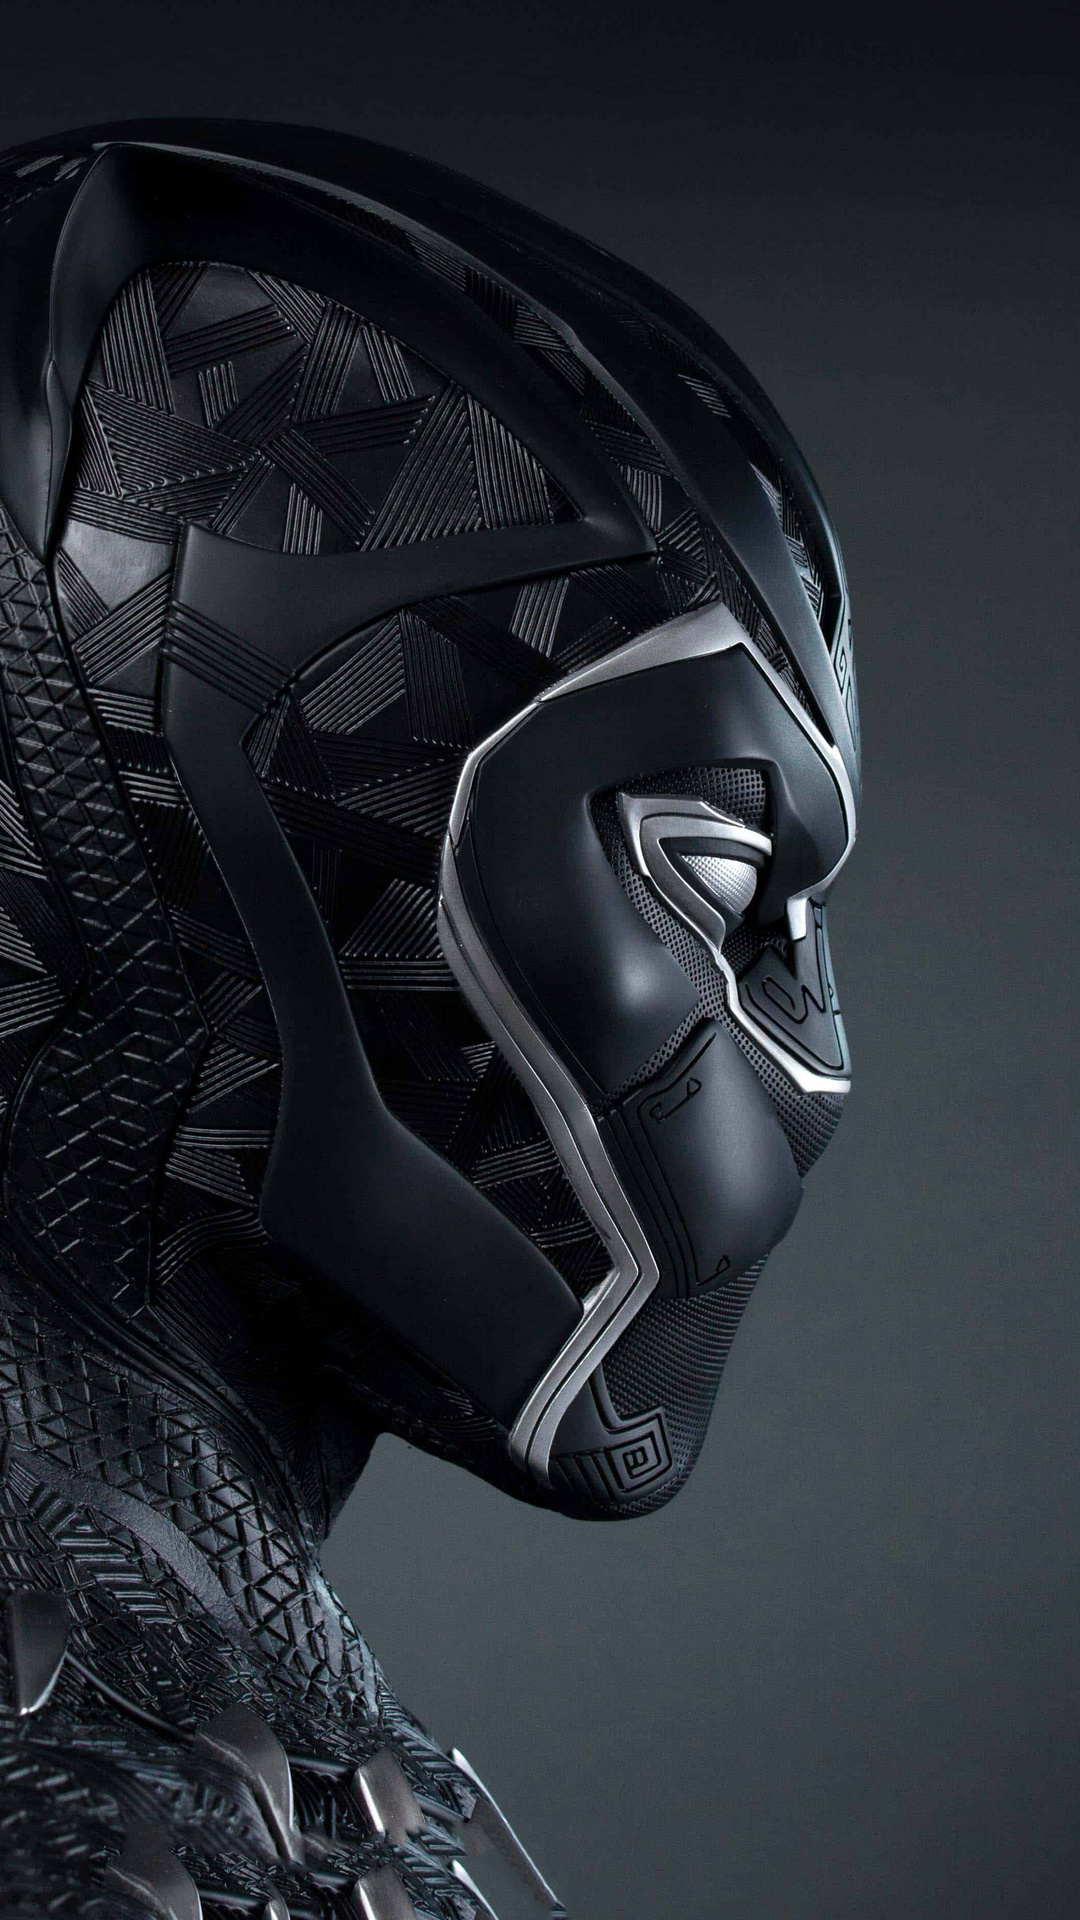 1080x1920 Black Panther 5k New 2019 Iphone 7,6s,6 Plus ...